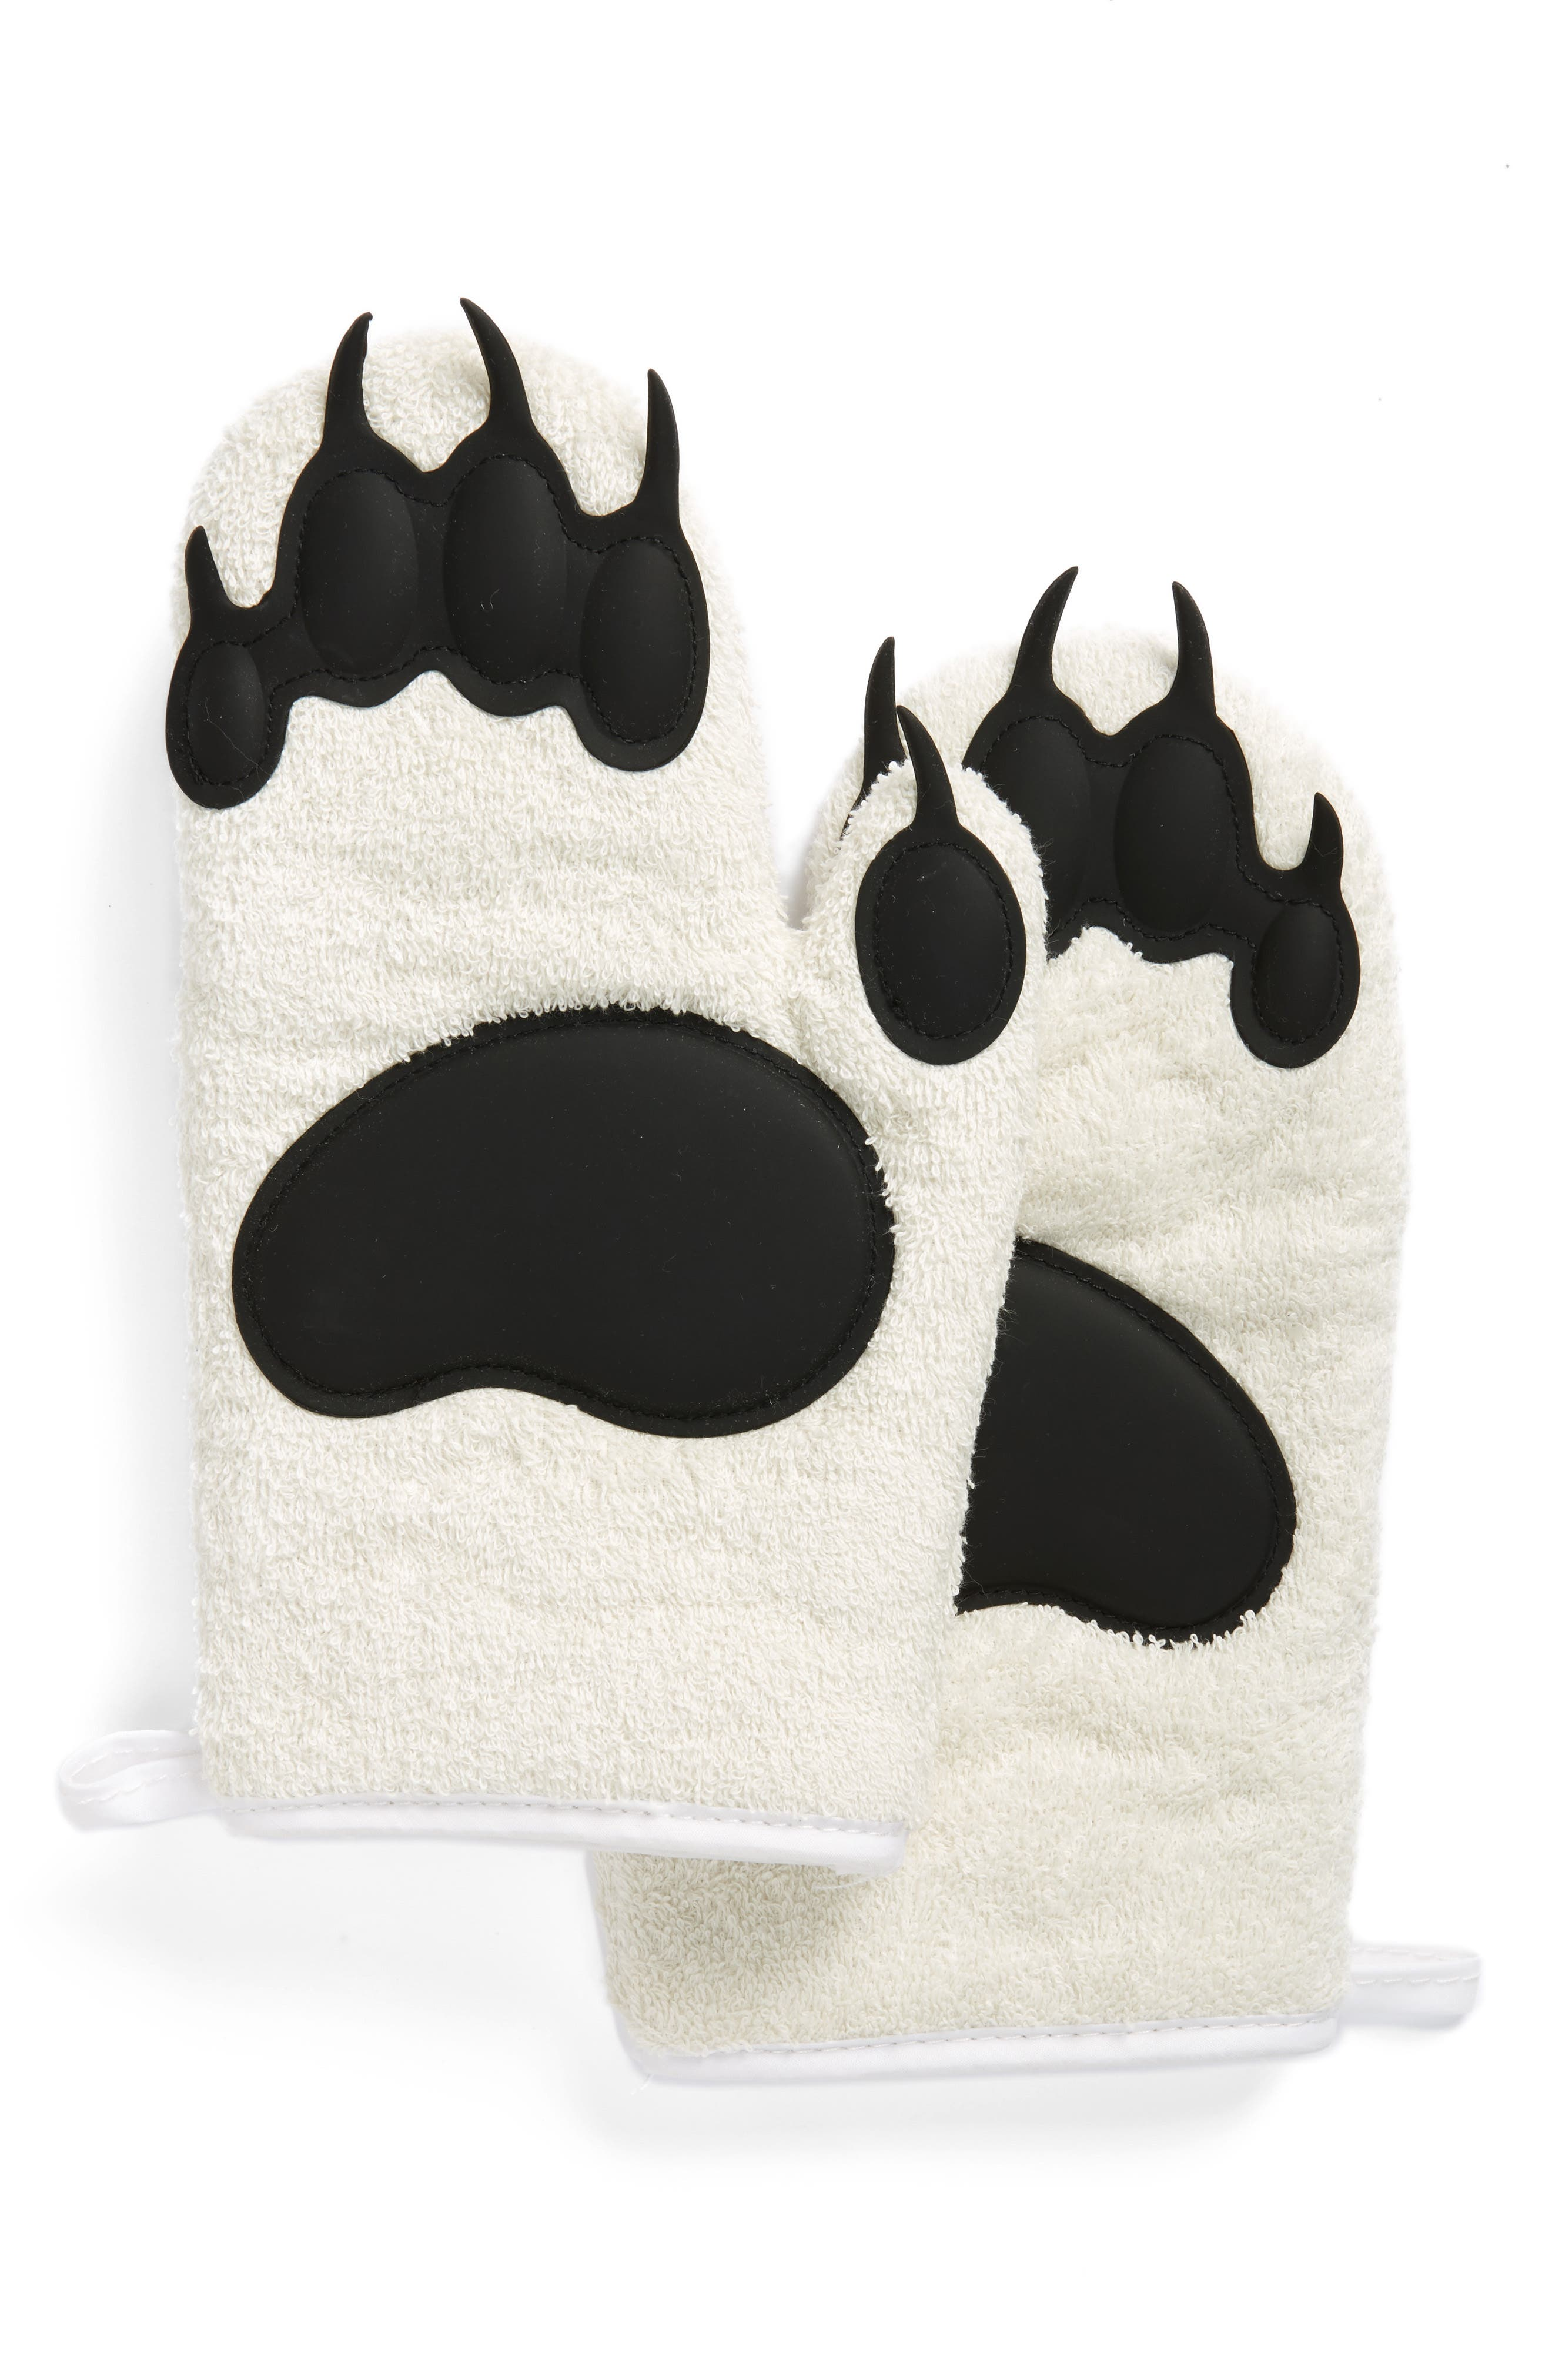 Fred and Friends Bear Hands Oven Mitts